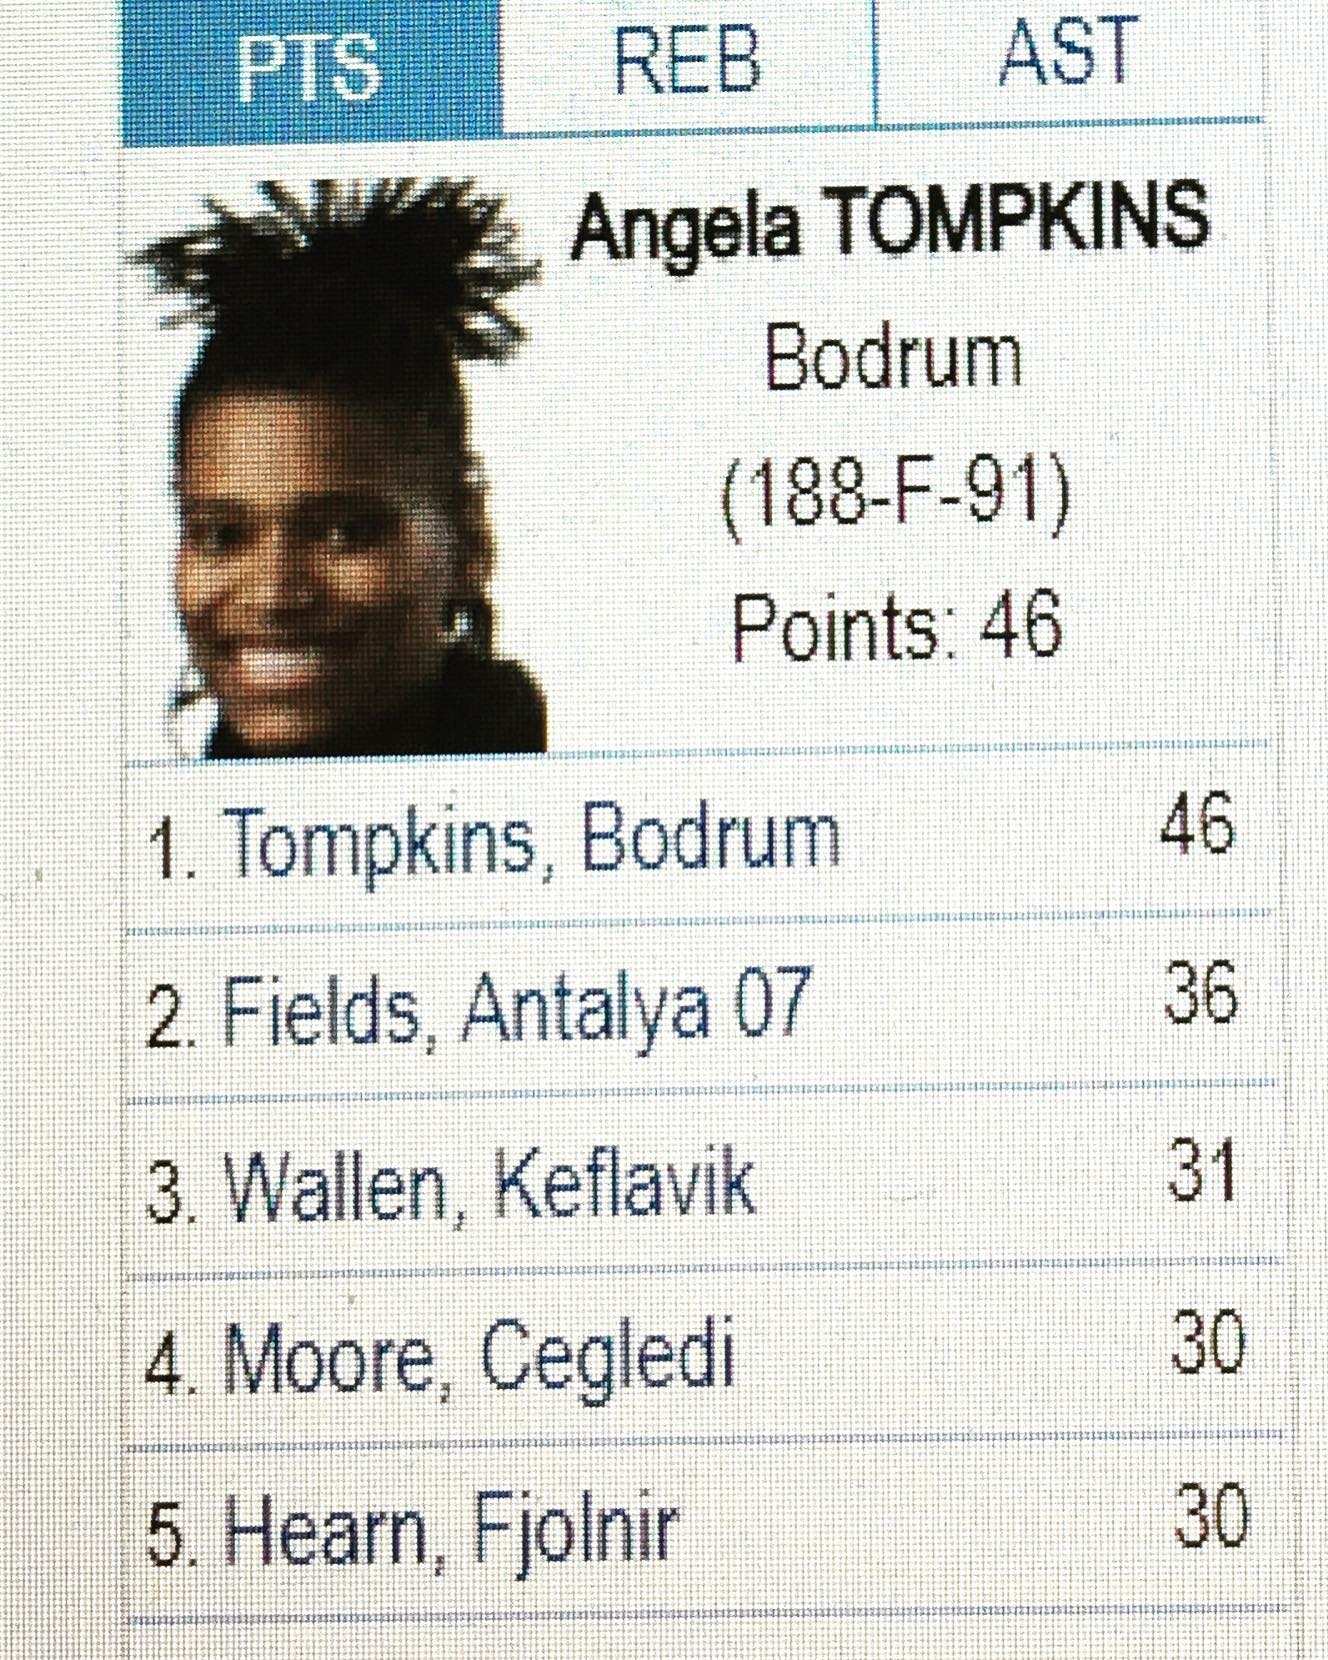 Tompkins' 46 points vs Fenerbahce set a new high scoring record in Europe this week!